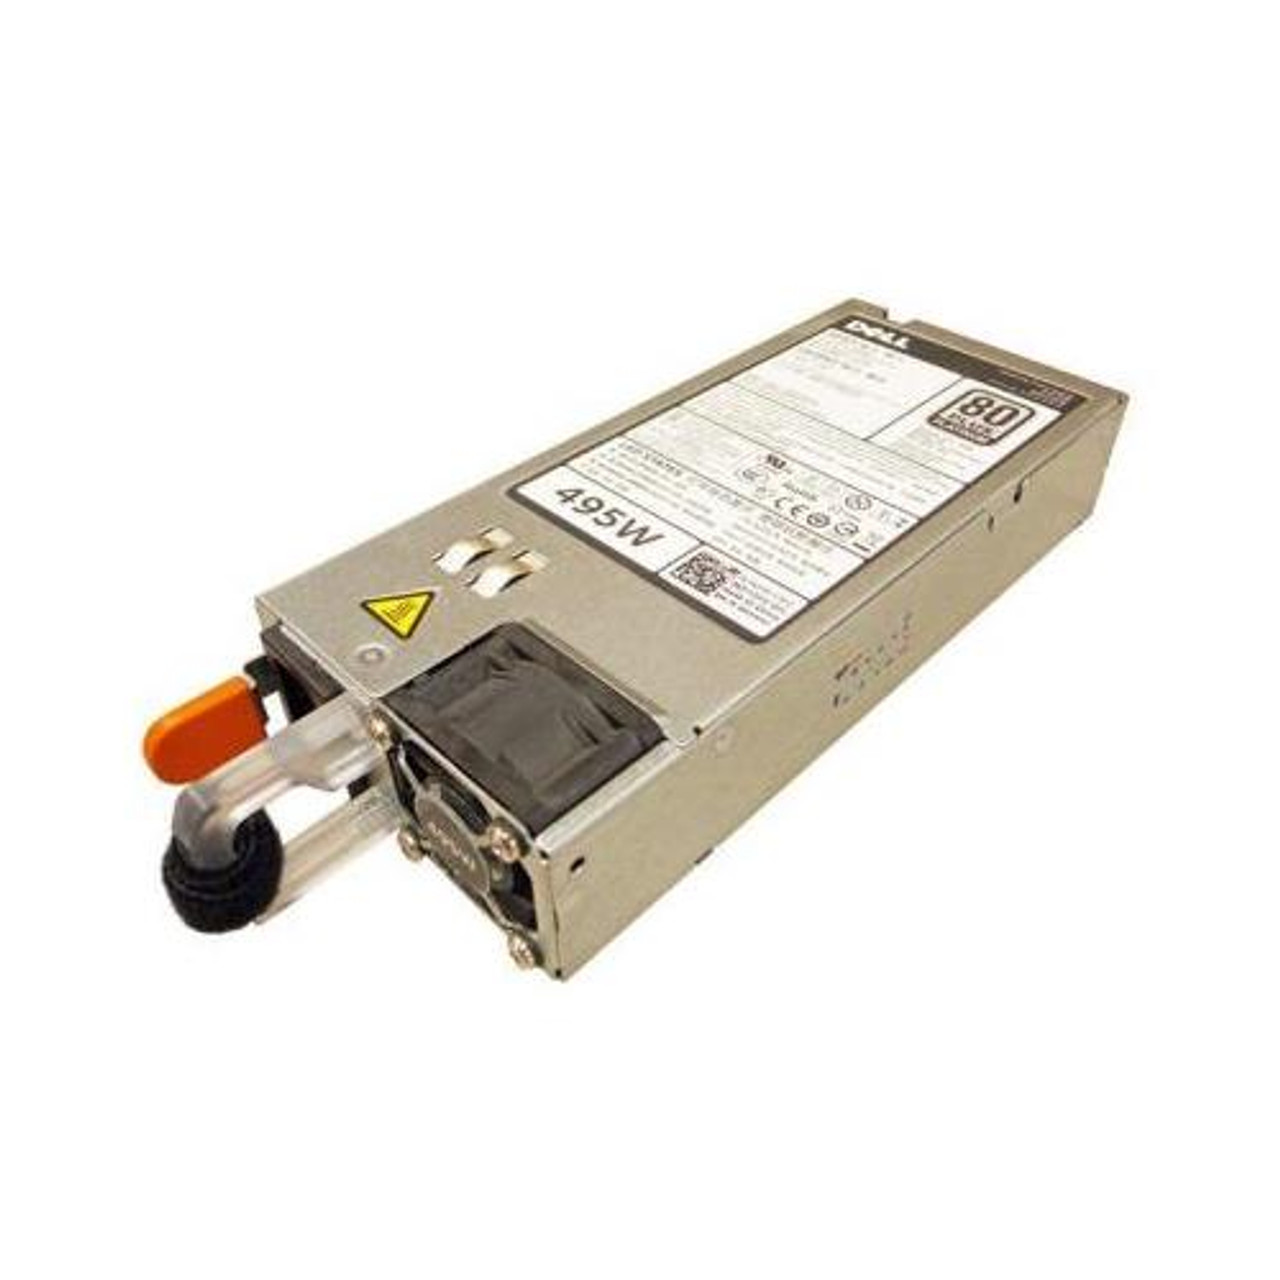 DELL 331-5928 495 W Dell 495-Watt Power Supply Internal